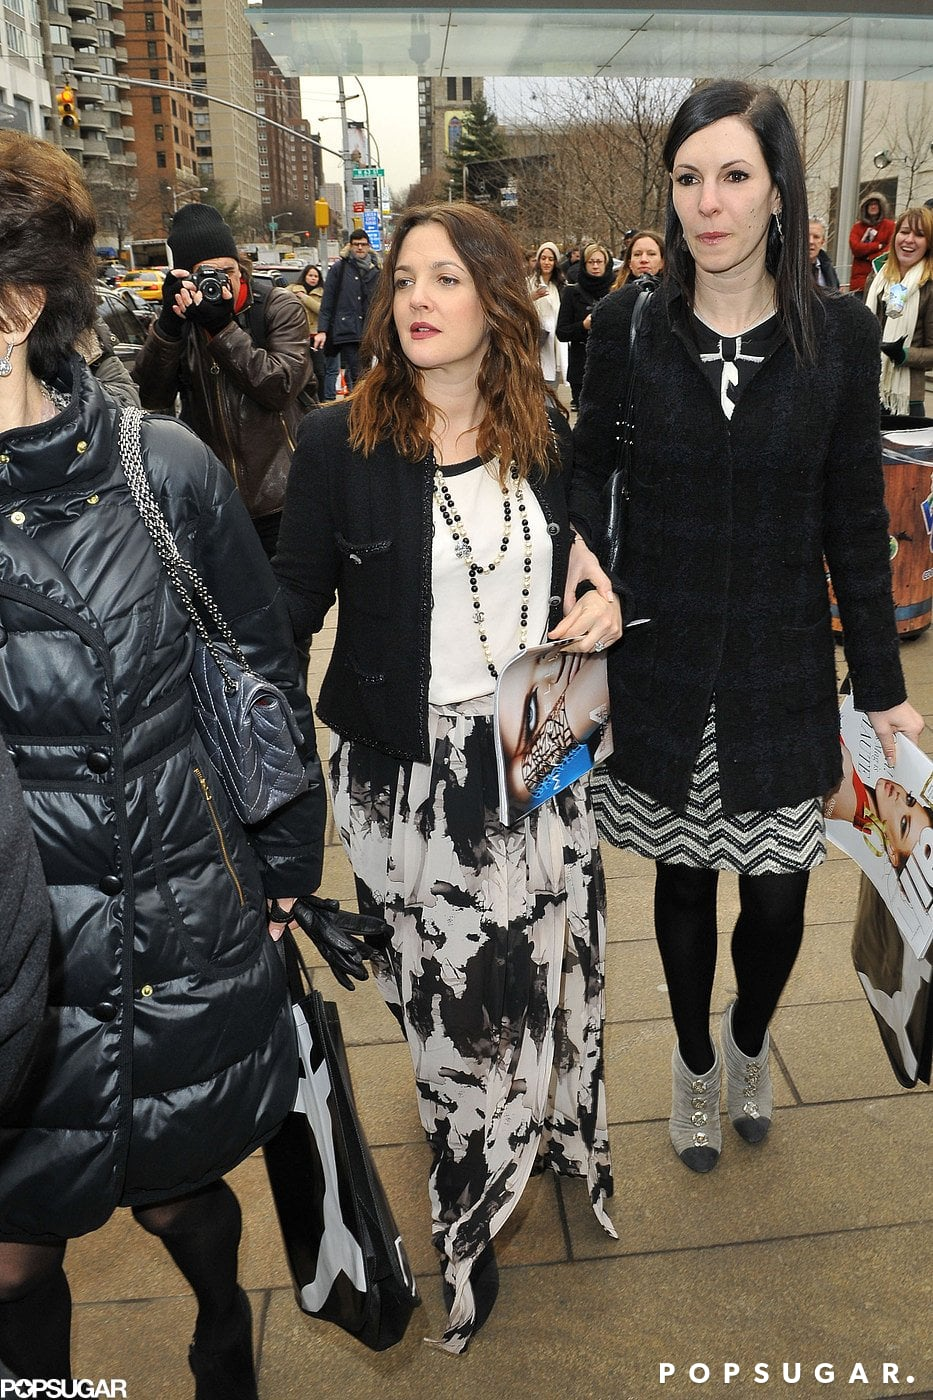 Drew Barrymore Parties With Katie Holmes Pre Fashion Week